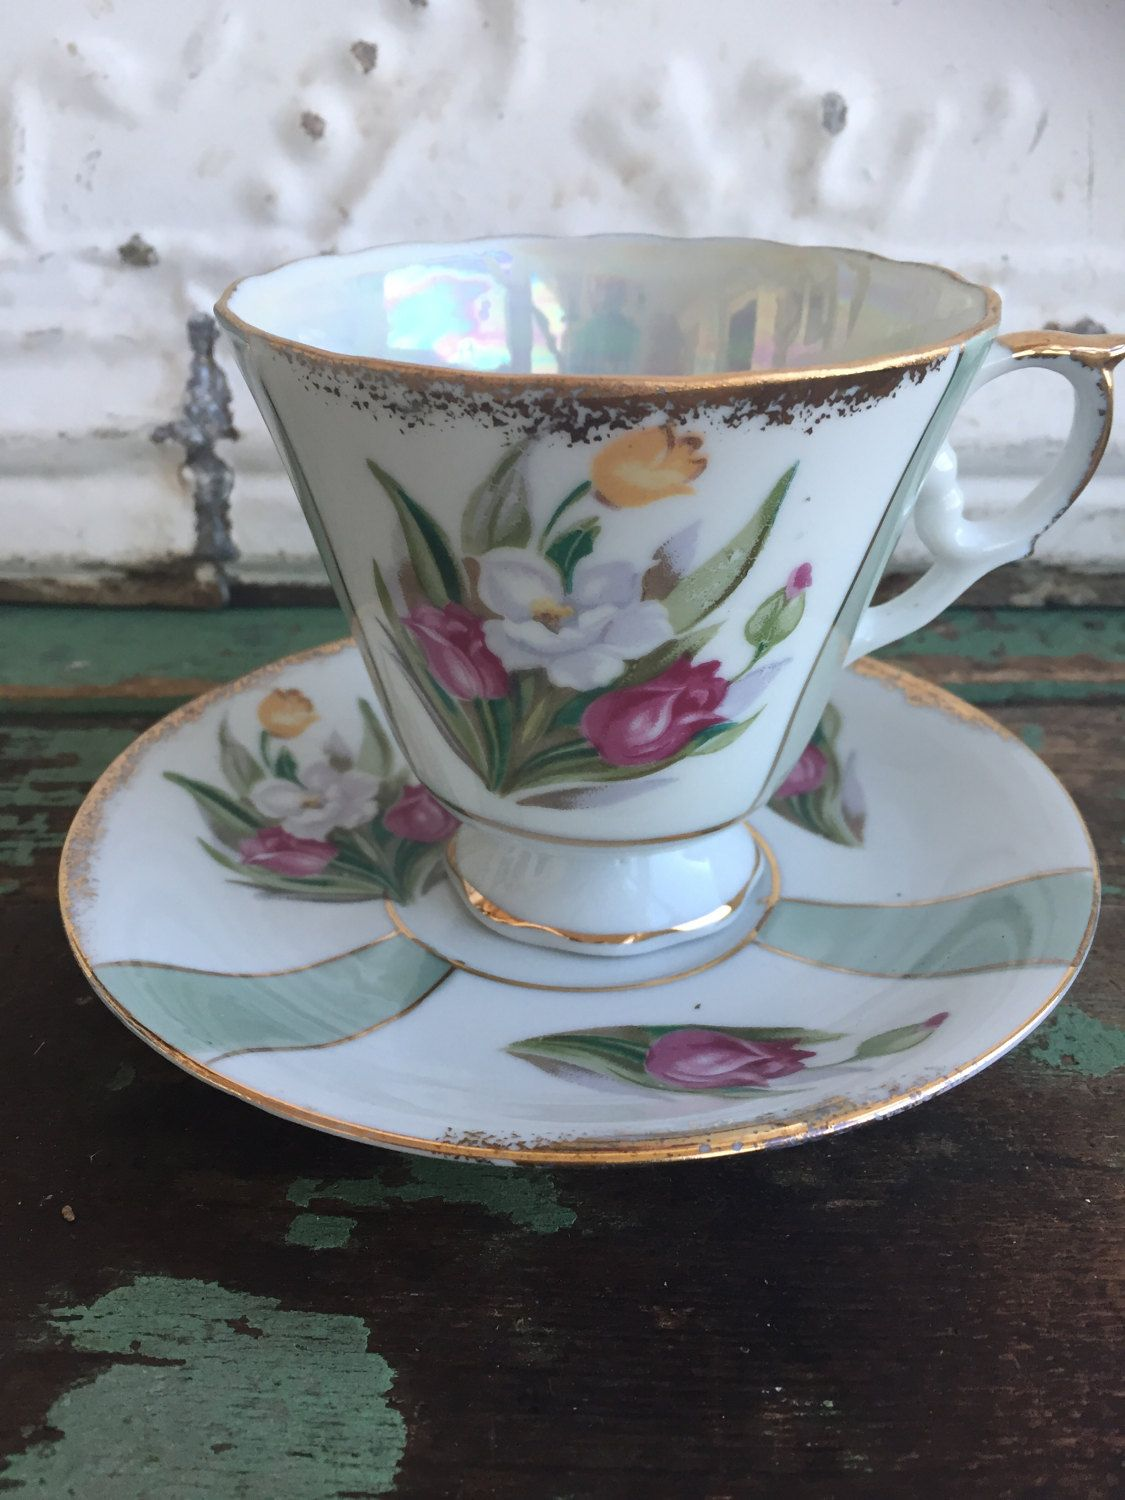 Vintage Teacup Tea Cup and Saucer Lusterware Floral rose Pedestal by Holliezhobbiez on Etsy